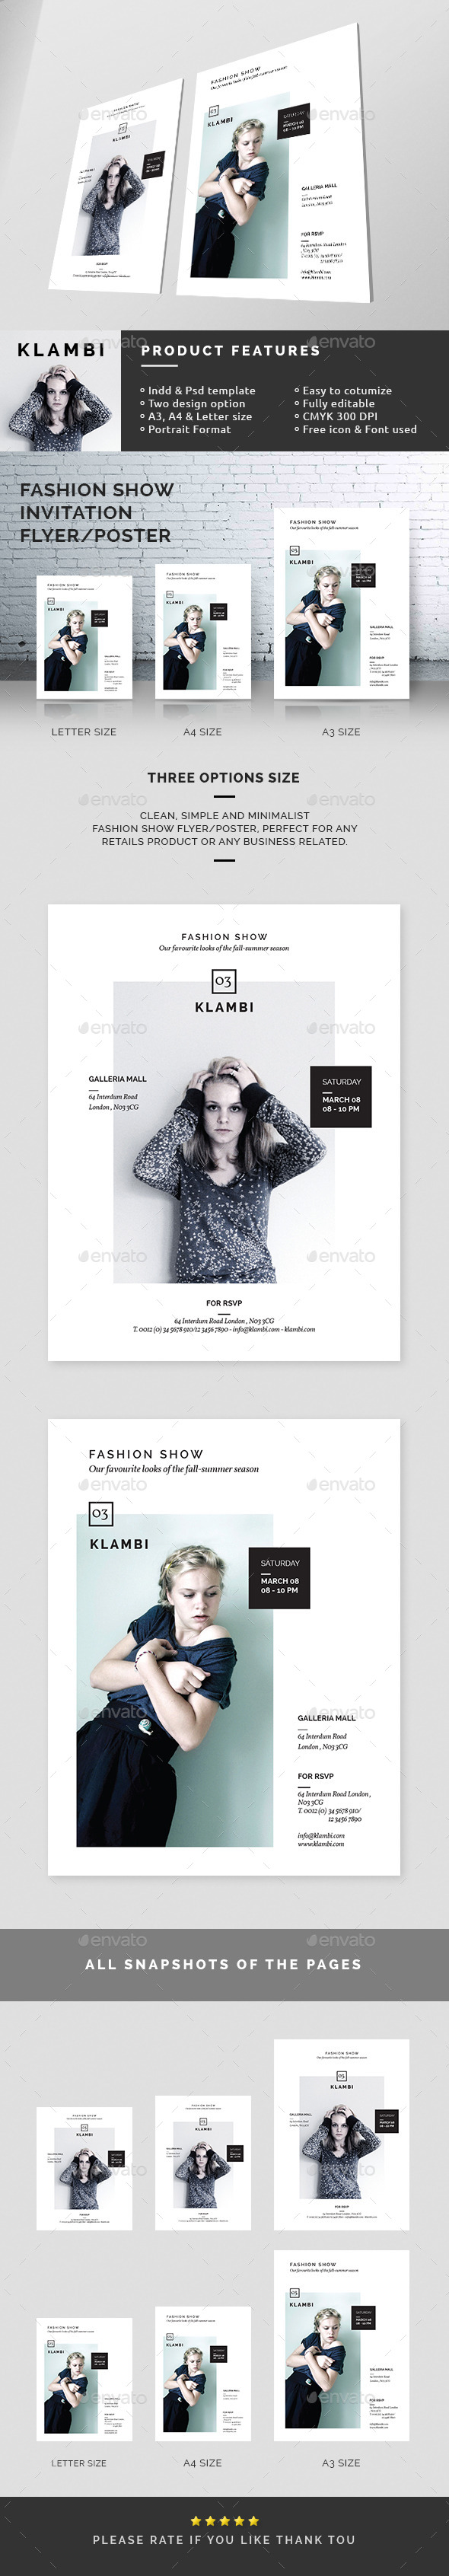 Fashion Show Invitation Flyer/Poster - Miscellaneous Events